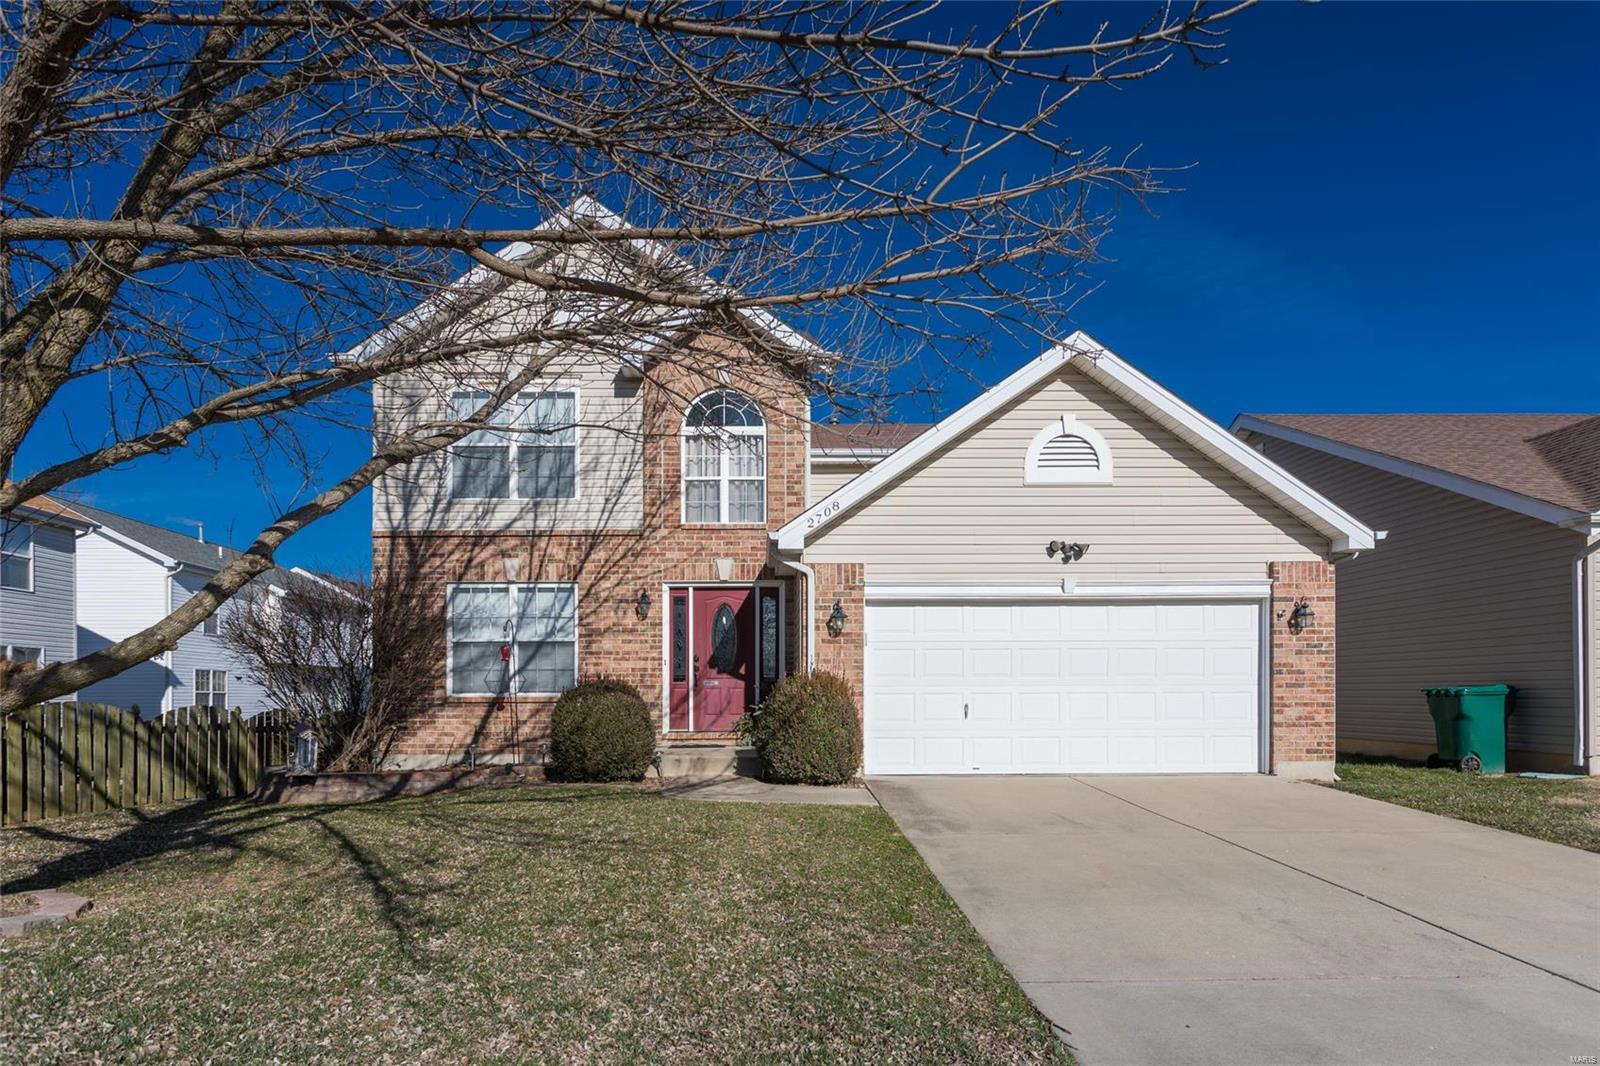 2708 Brookmeadow Drive, Belleville, IL 62221 | Image #1 of 33 from carousel  ...